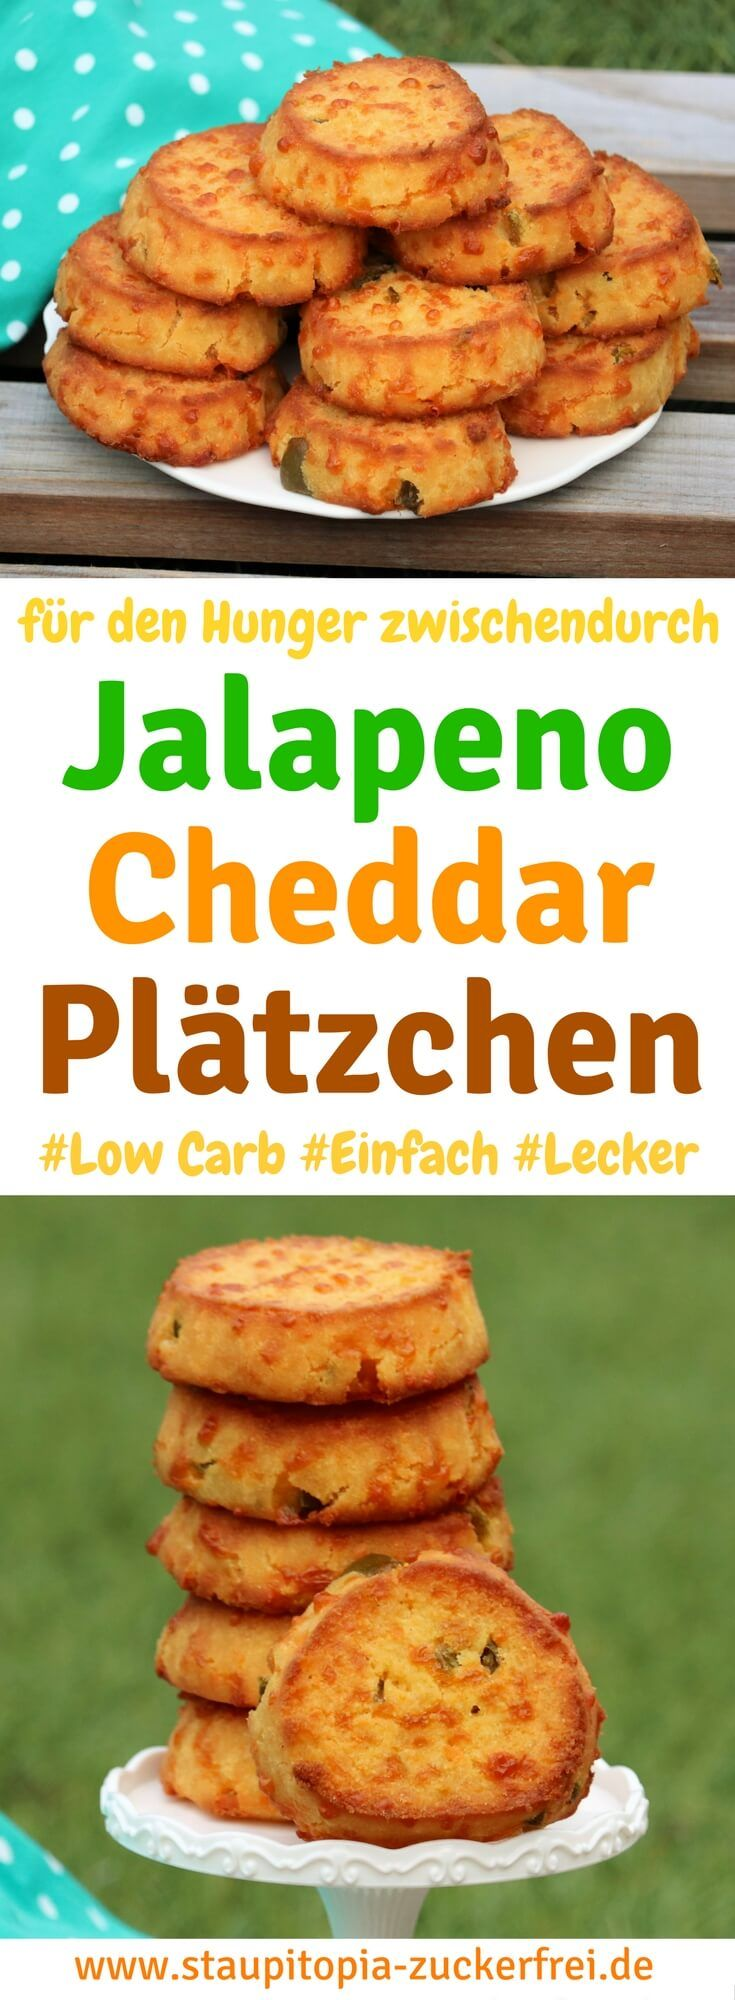 These savory low carb jalapeno cheddar cookies are the perfect snack in between.  You can make the cookies quickly and easily yourself, the sharpness of your metabolism is stimulated and they are wonderfully saturated when the sudden cravings come over you.  A perfect recipe for those who are looking for hearty and healthy snack ideas for work, school or even in the evening.